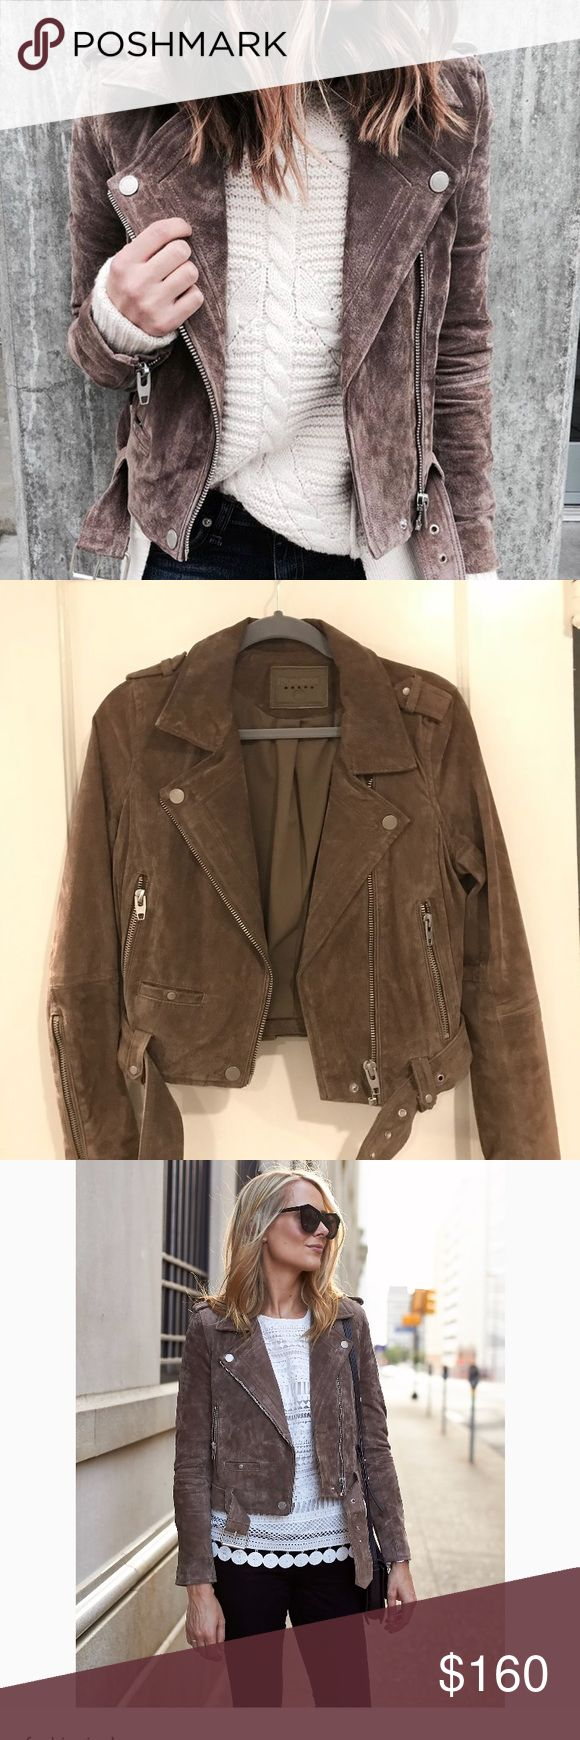 NEW❗️Blank NYC Moto Suede jacket Morning Small New without tags BlankNYC Morning moto jacket in small. Genuine suede leather, perfect condition, only tried on at home a few times and has been sitting in my closet since. With a new baby i will probably never get to wear this for fear of ruining it. This is a blogger favorite and has been featured on so many sites!!! Color is a little hard to capture indoors will try to take more photos in natural lighting. Price is firm, this is still full…